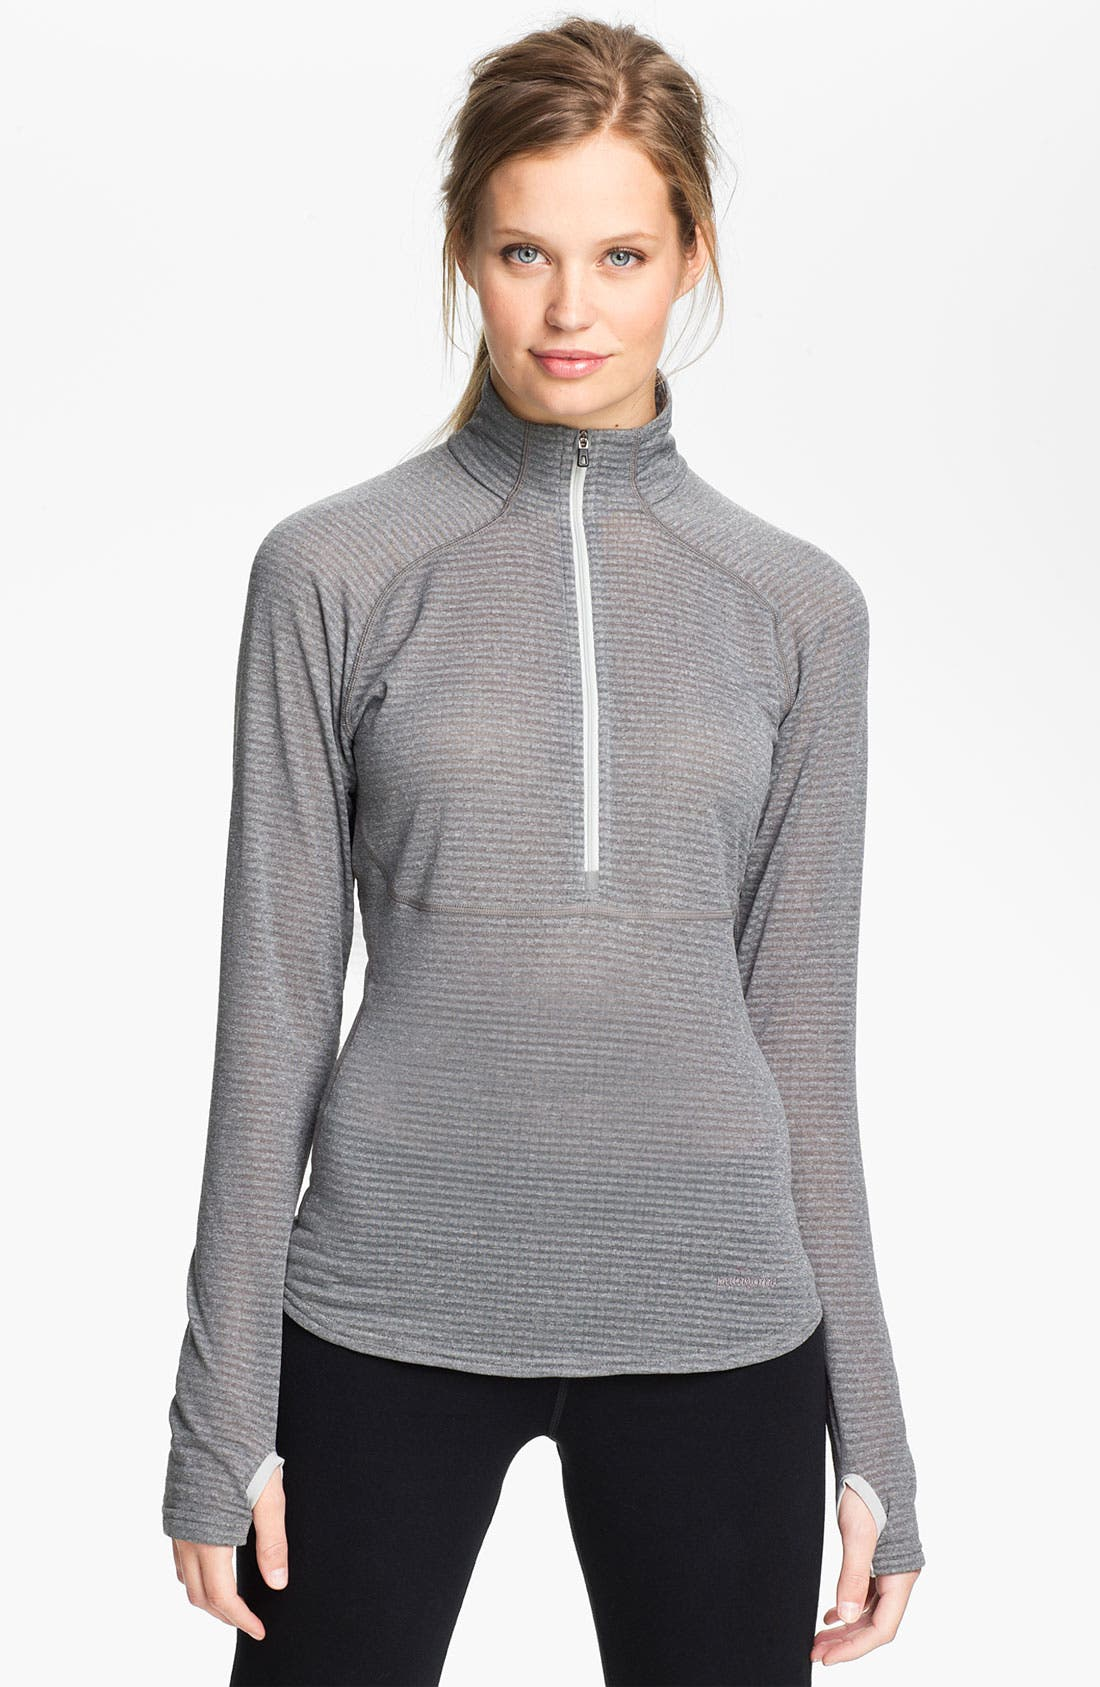 Alternate Image 1 Selected - Patagonia 'Capilene 4' Expedition Weight Base Layer Zip Neck Top